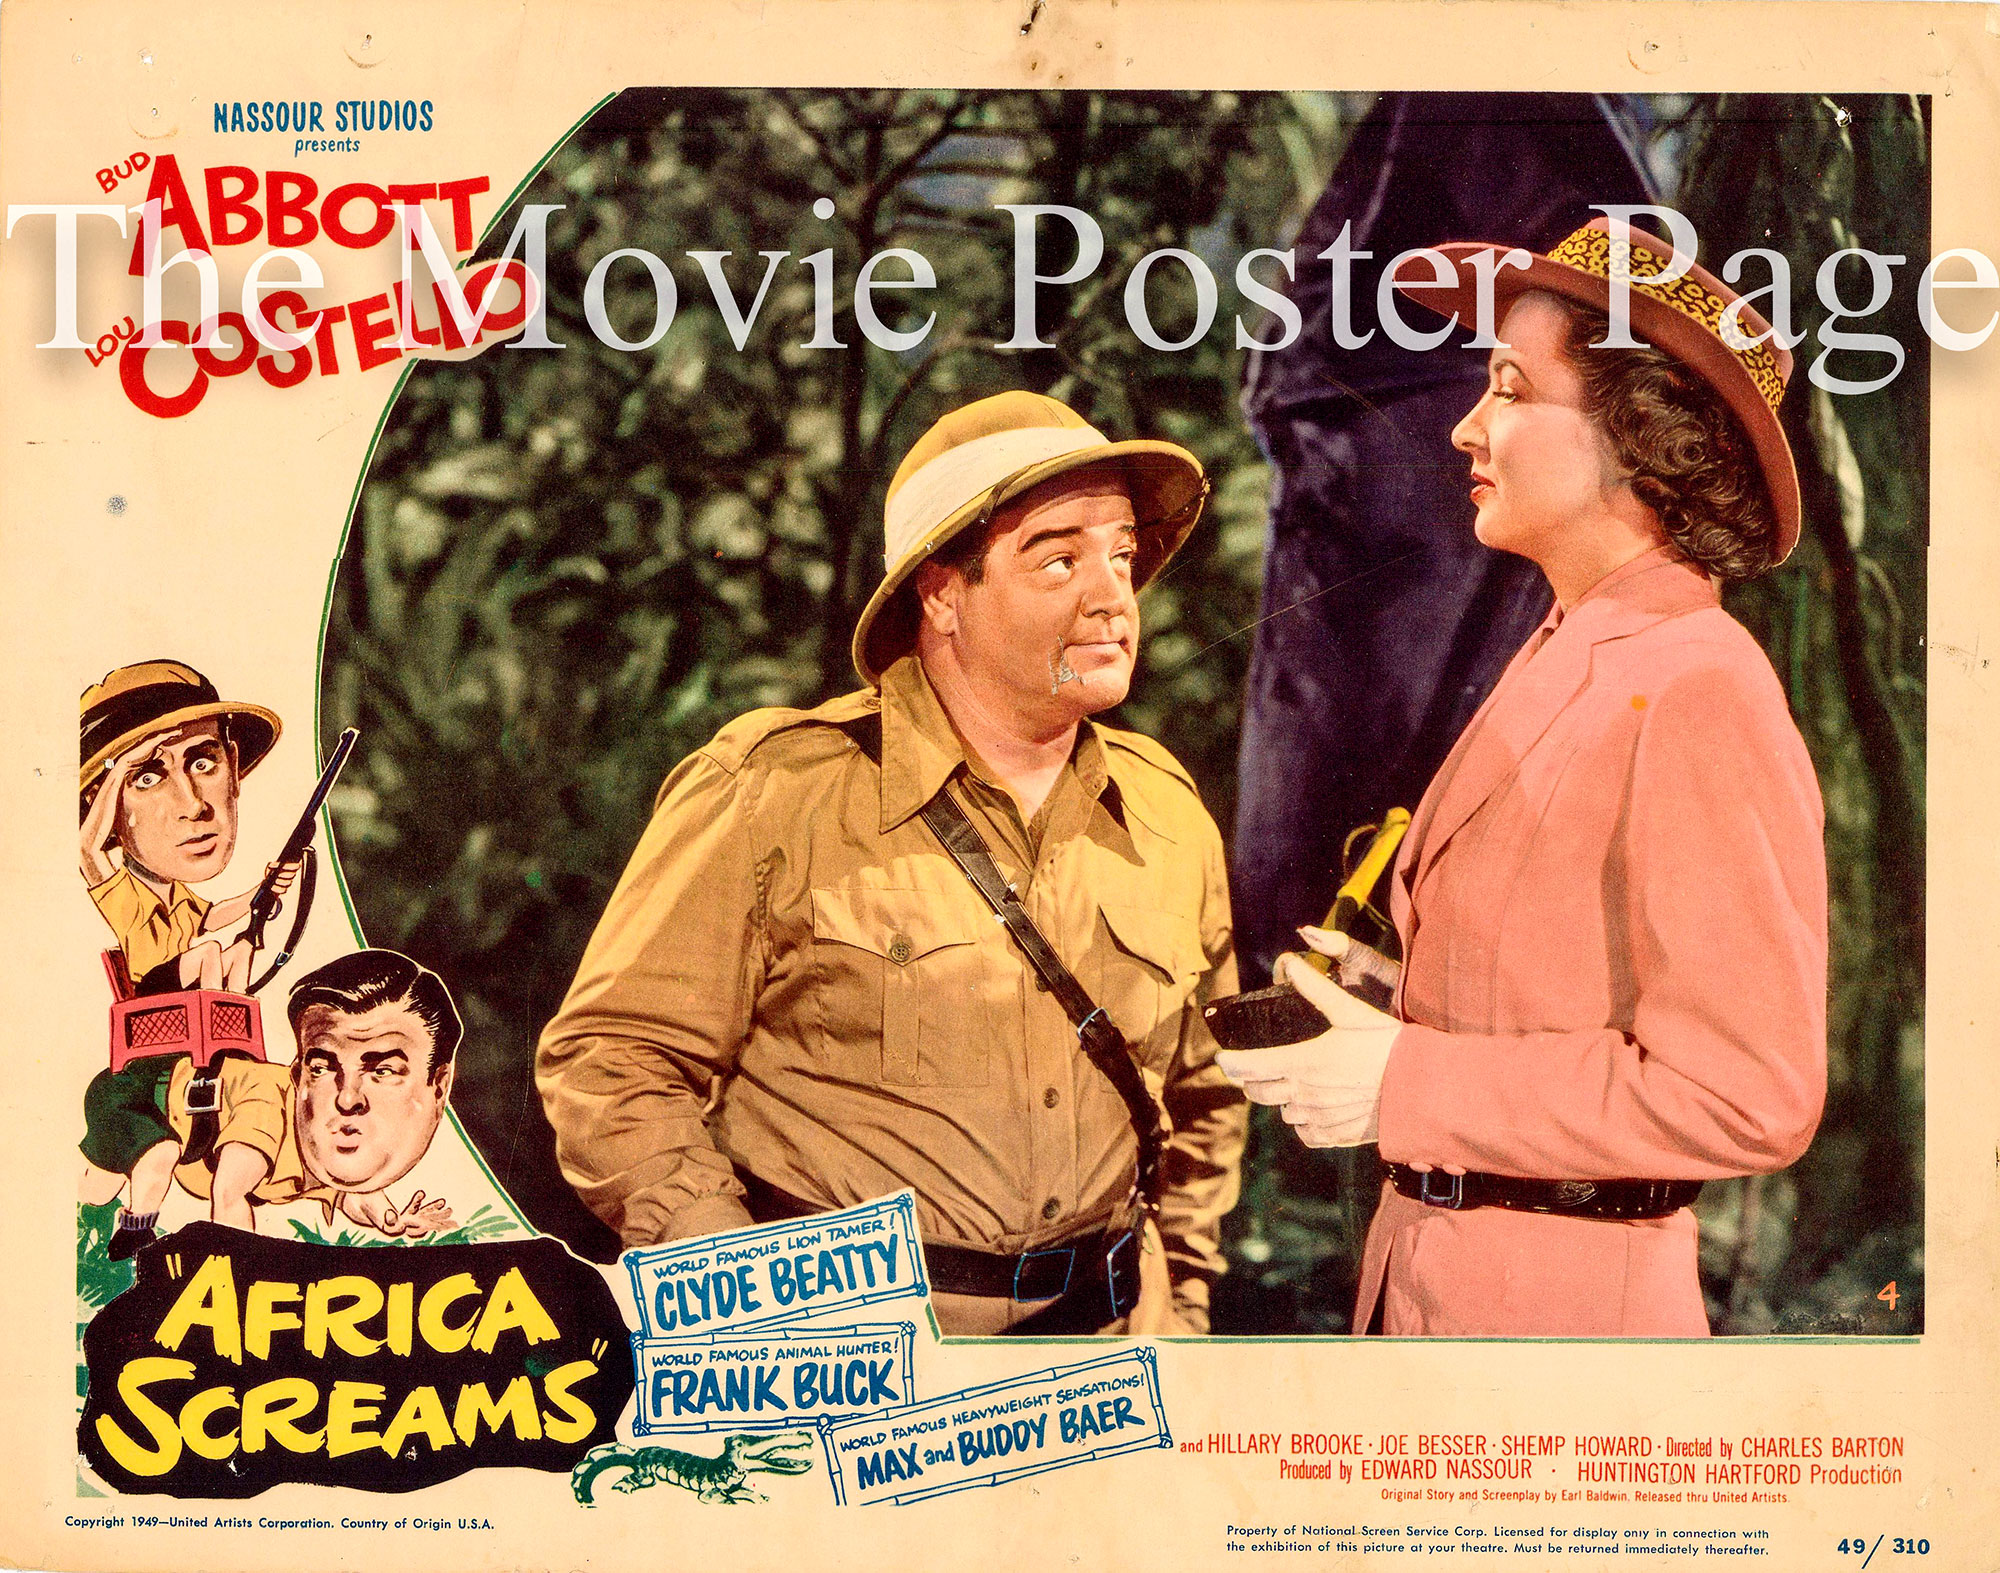 Pictured is the #4 lobby card from the 1949 Charles Barton film Africa Screams starring Bud Abbott and Lou Costello.